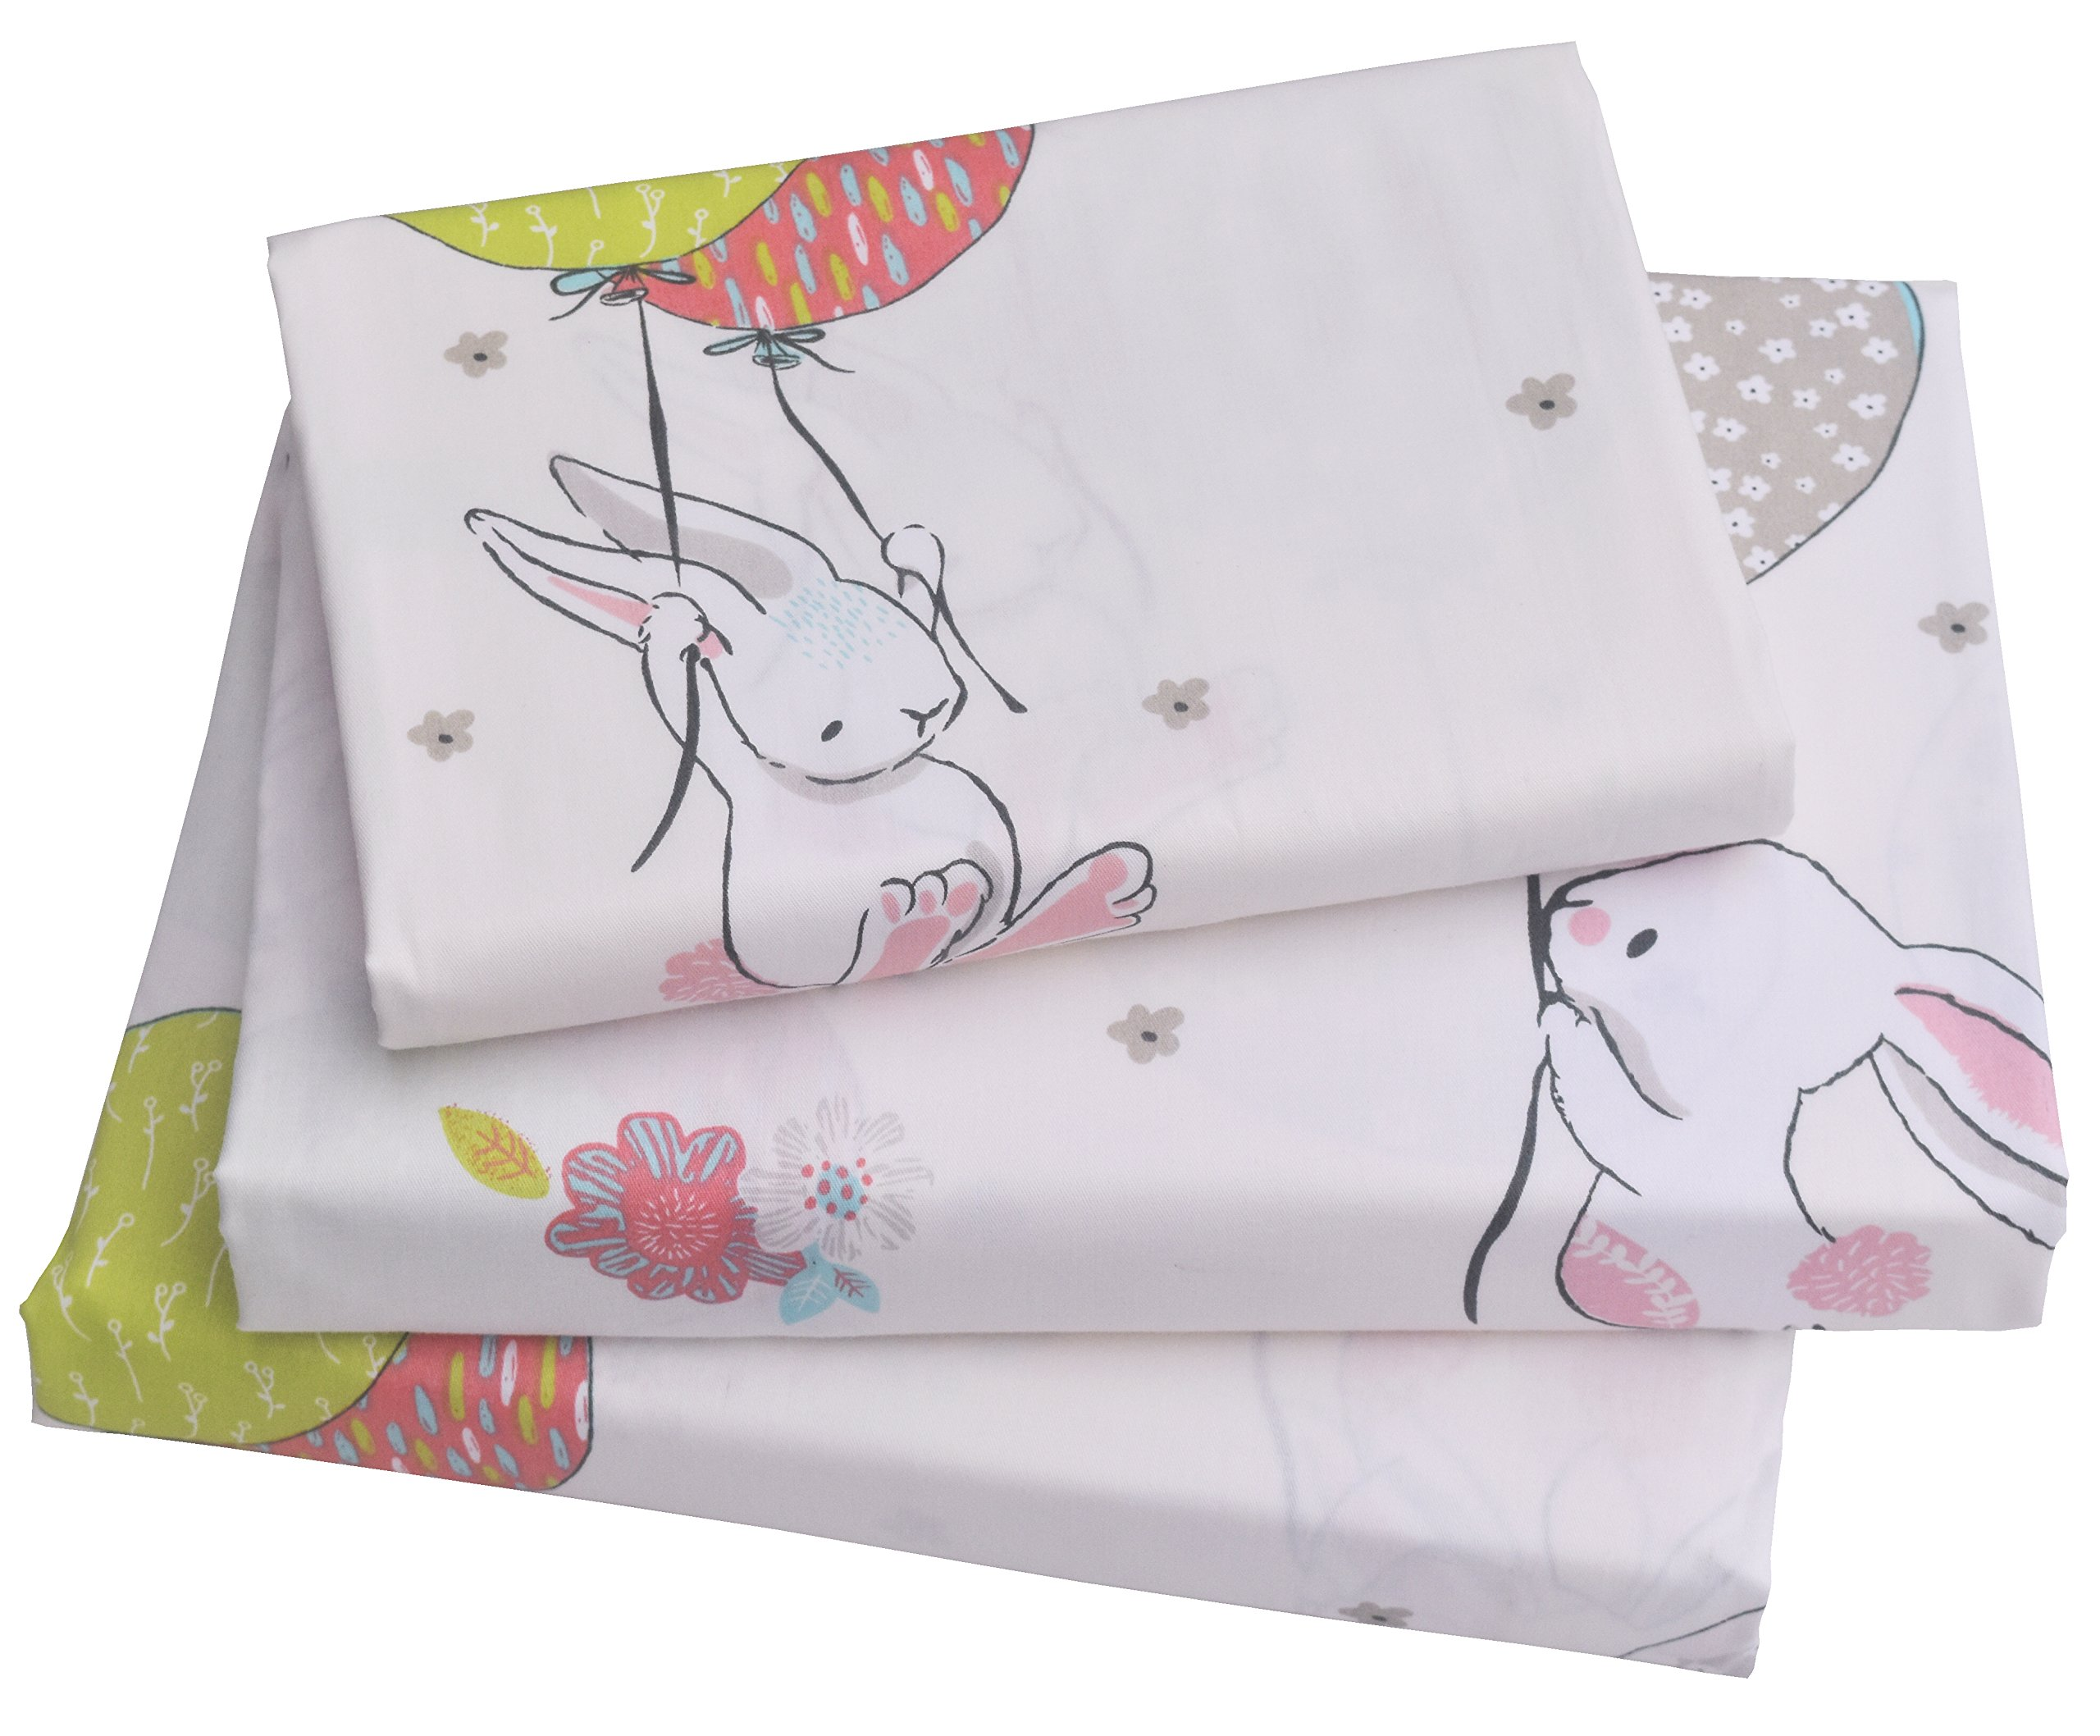 J-pinno Cute Cartoon Rabbit Bunny Twin Sheet Set for Kids Girl Children,100% Cotton, Flat Sheet + Fitted Sheet + Pillowcase Bedding Set